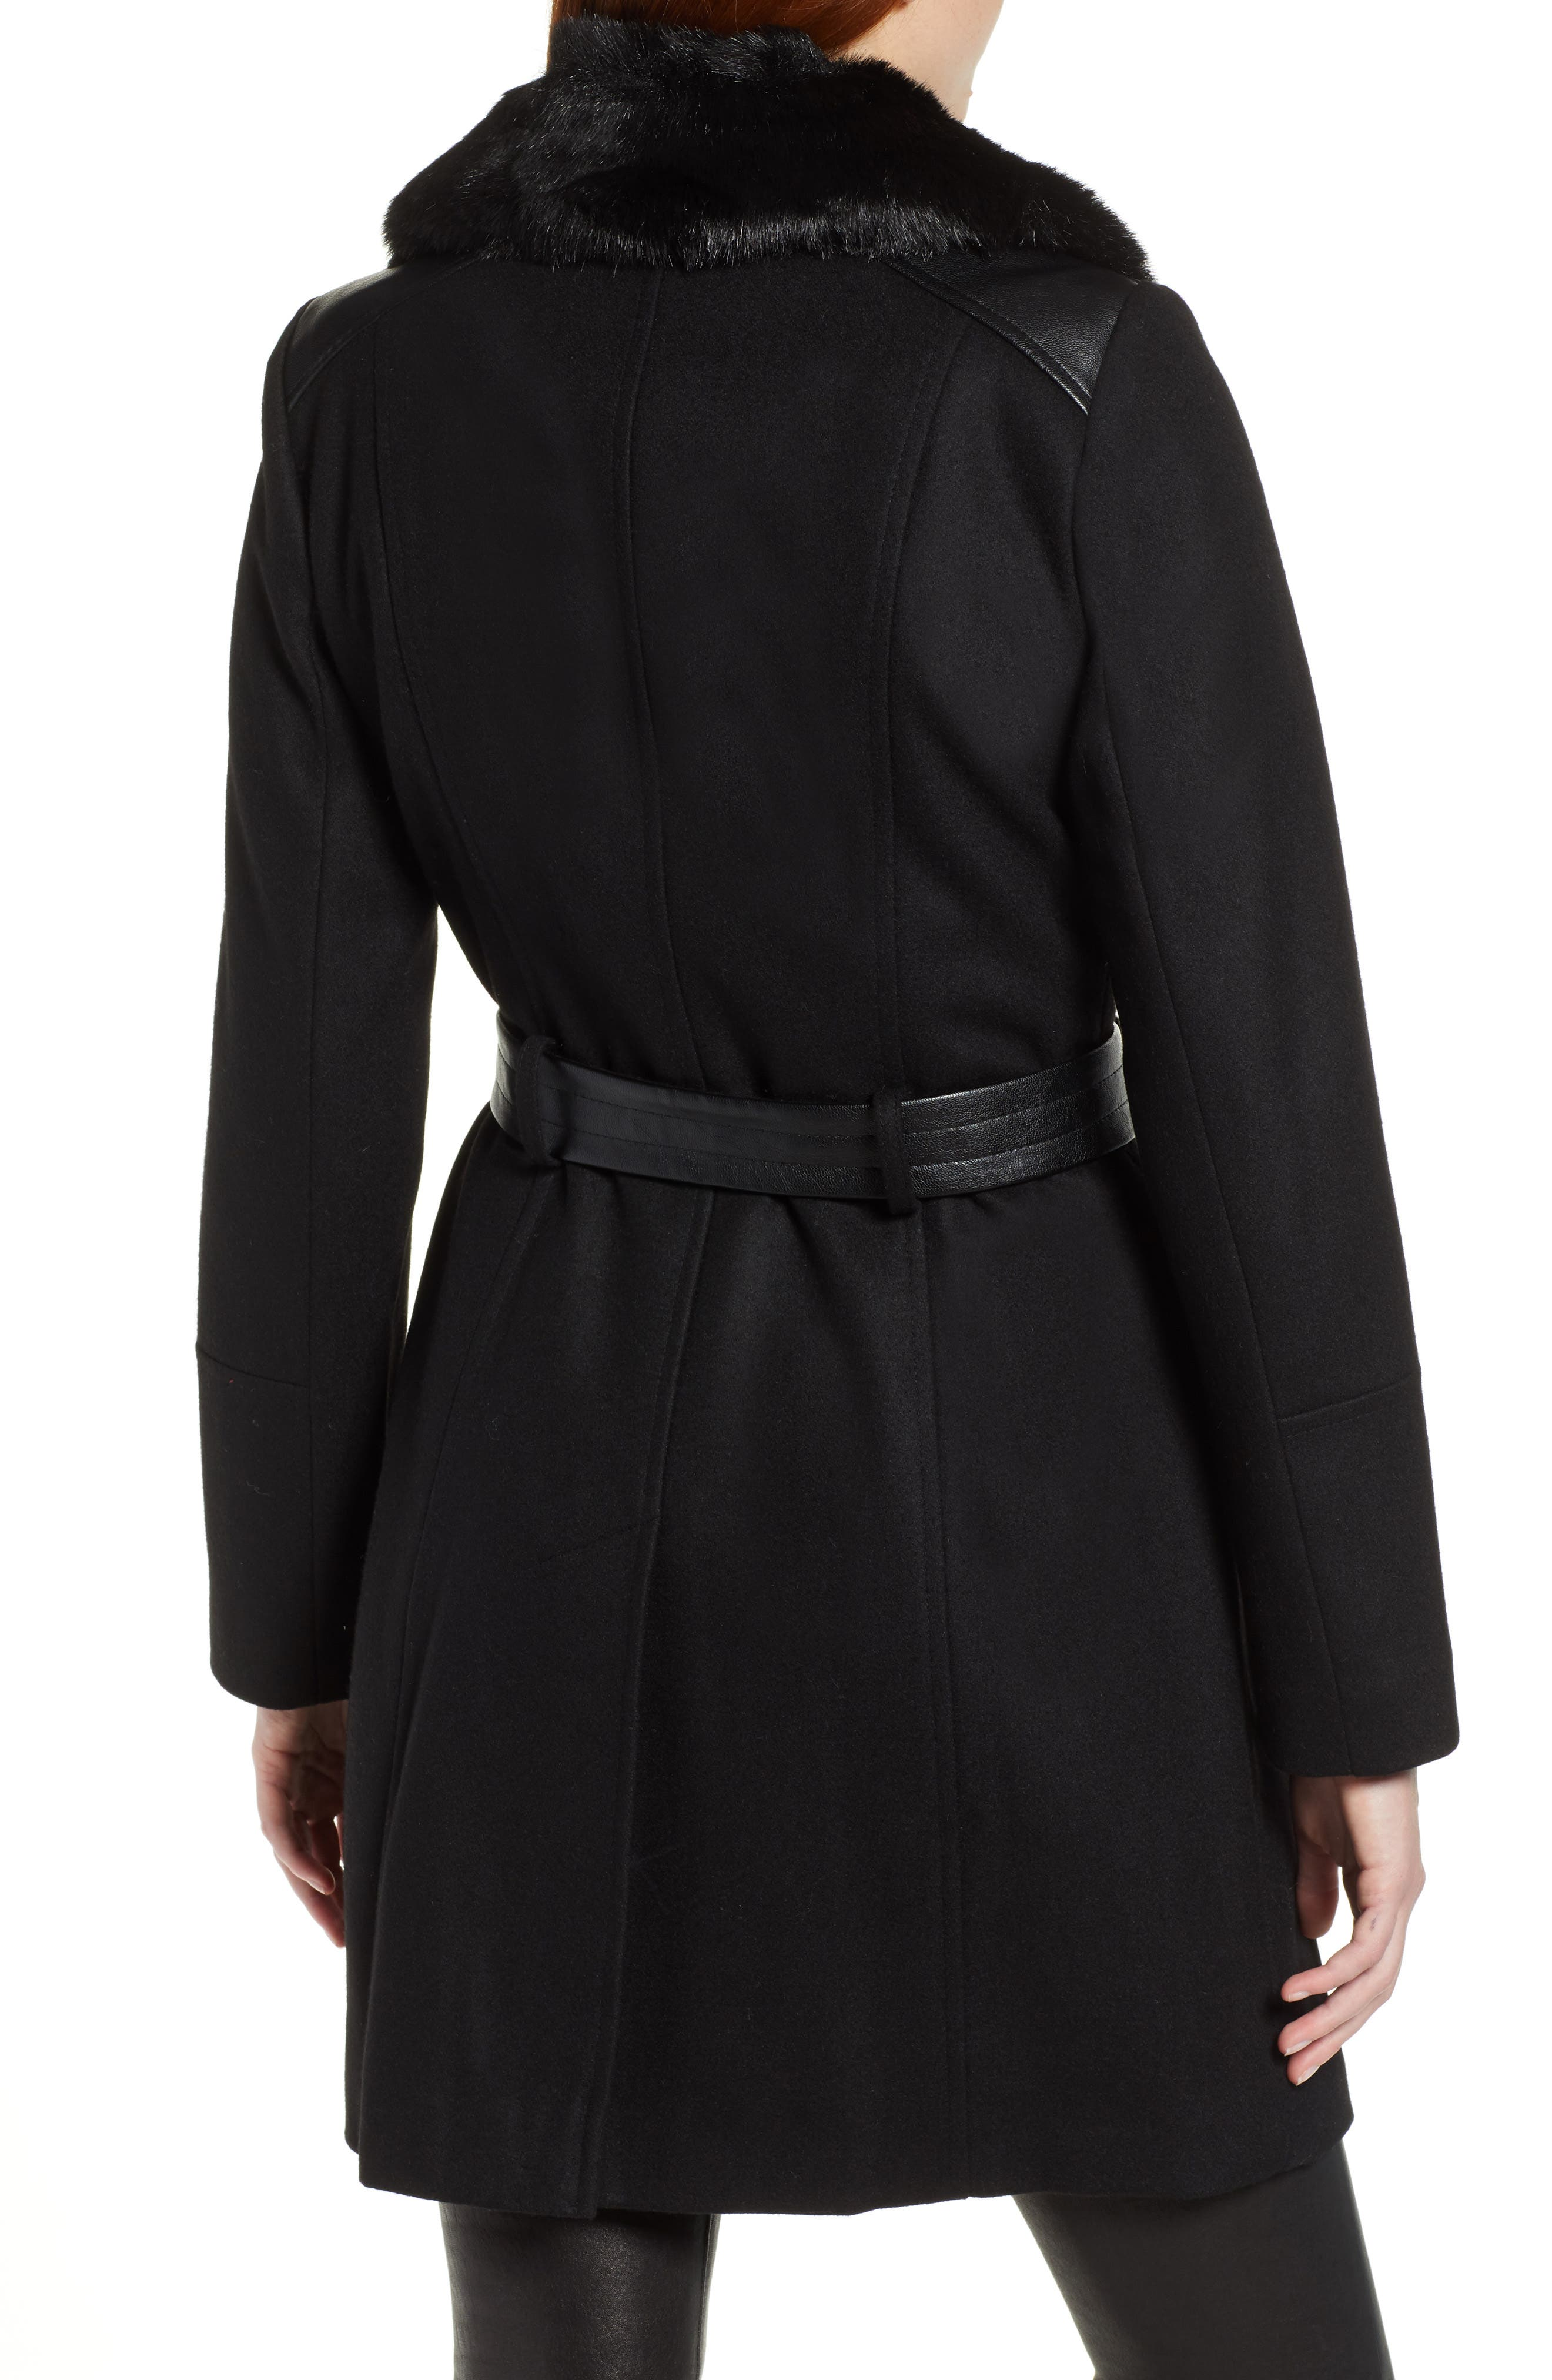 VIA SPIGA, Faux Fur Trim Belted Jacket, Alternate thumbnail 2, color, BLACK